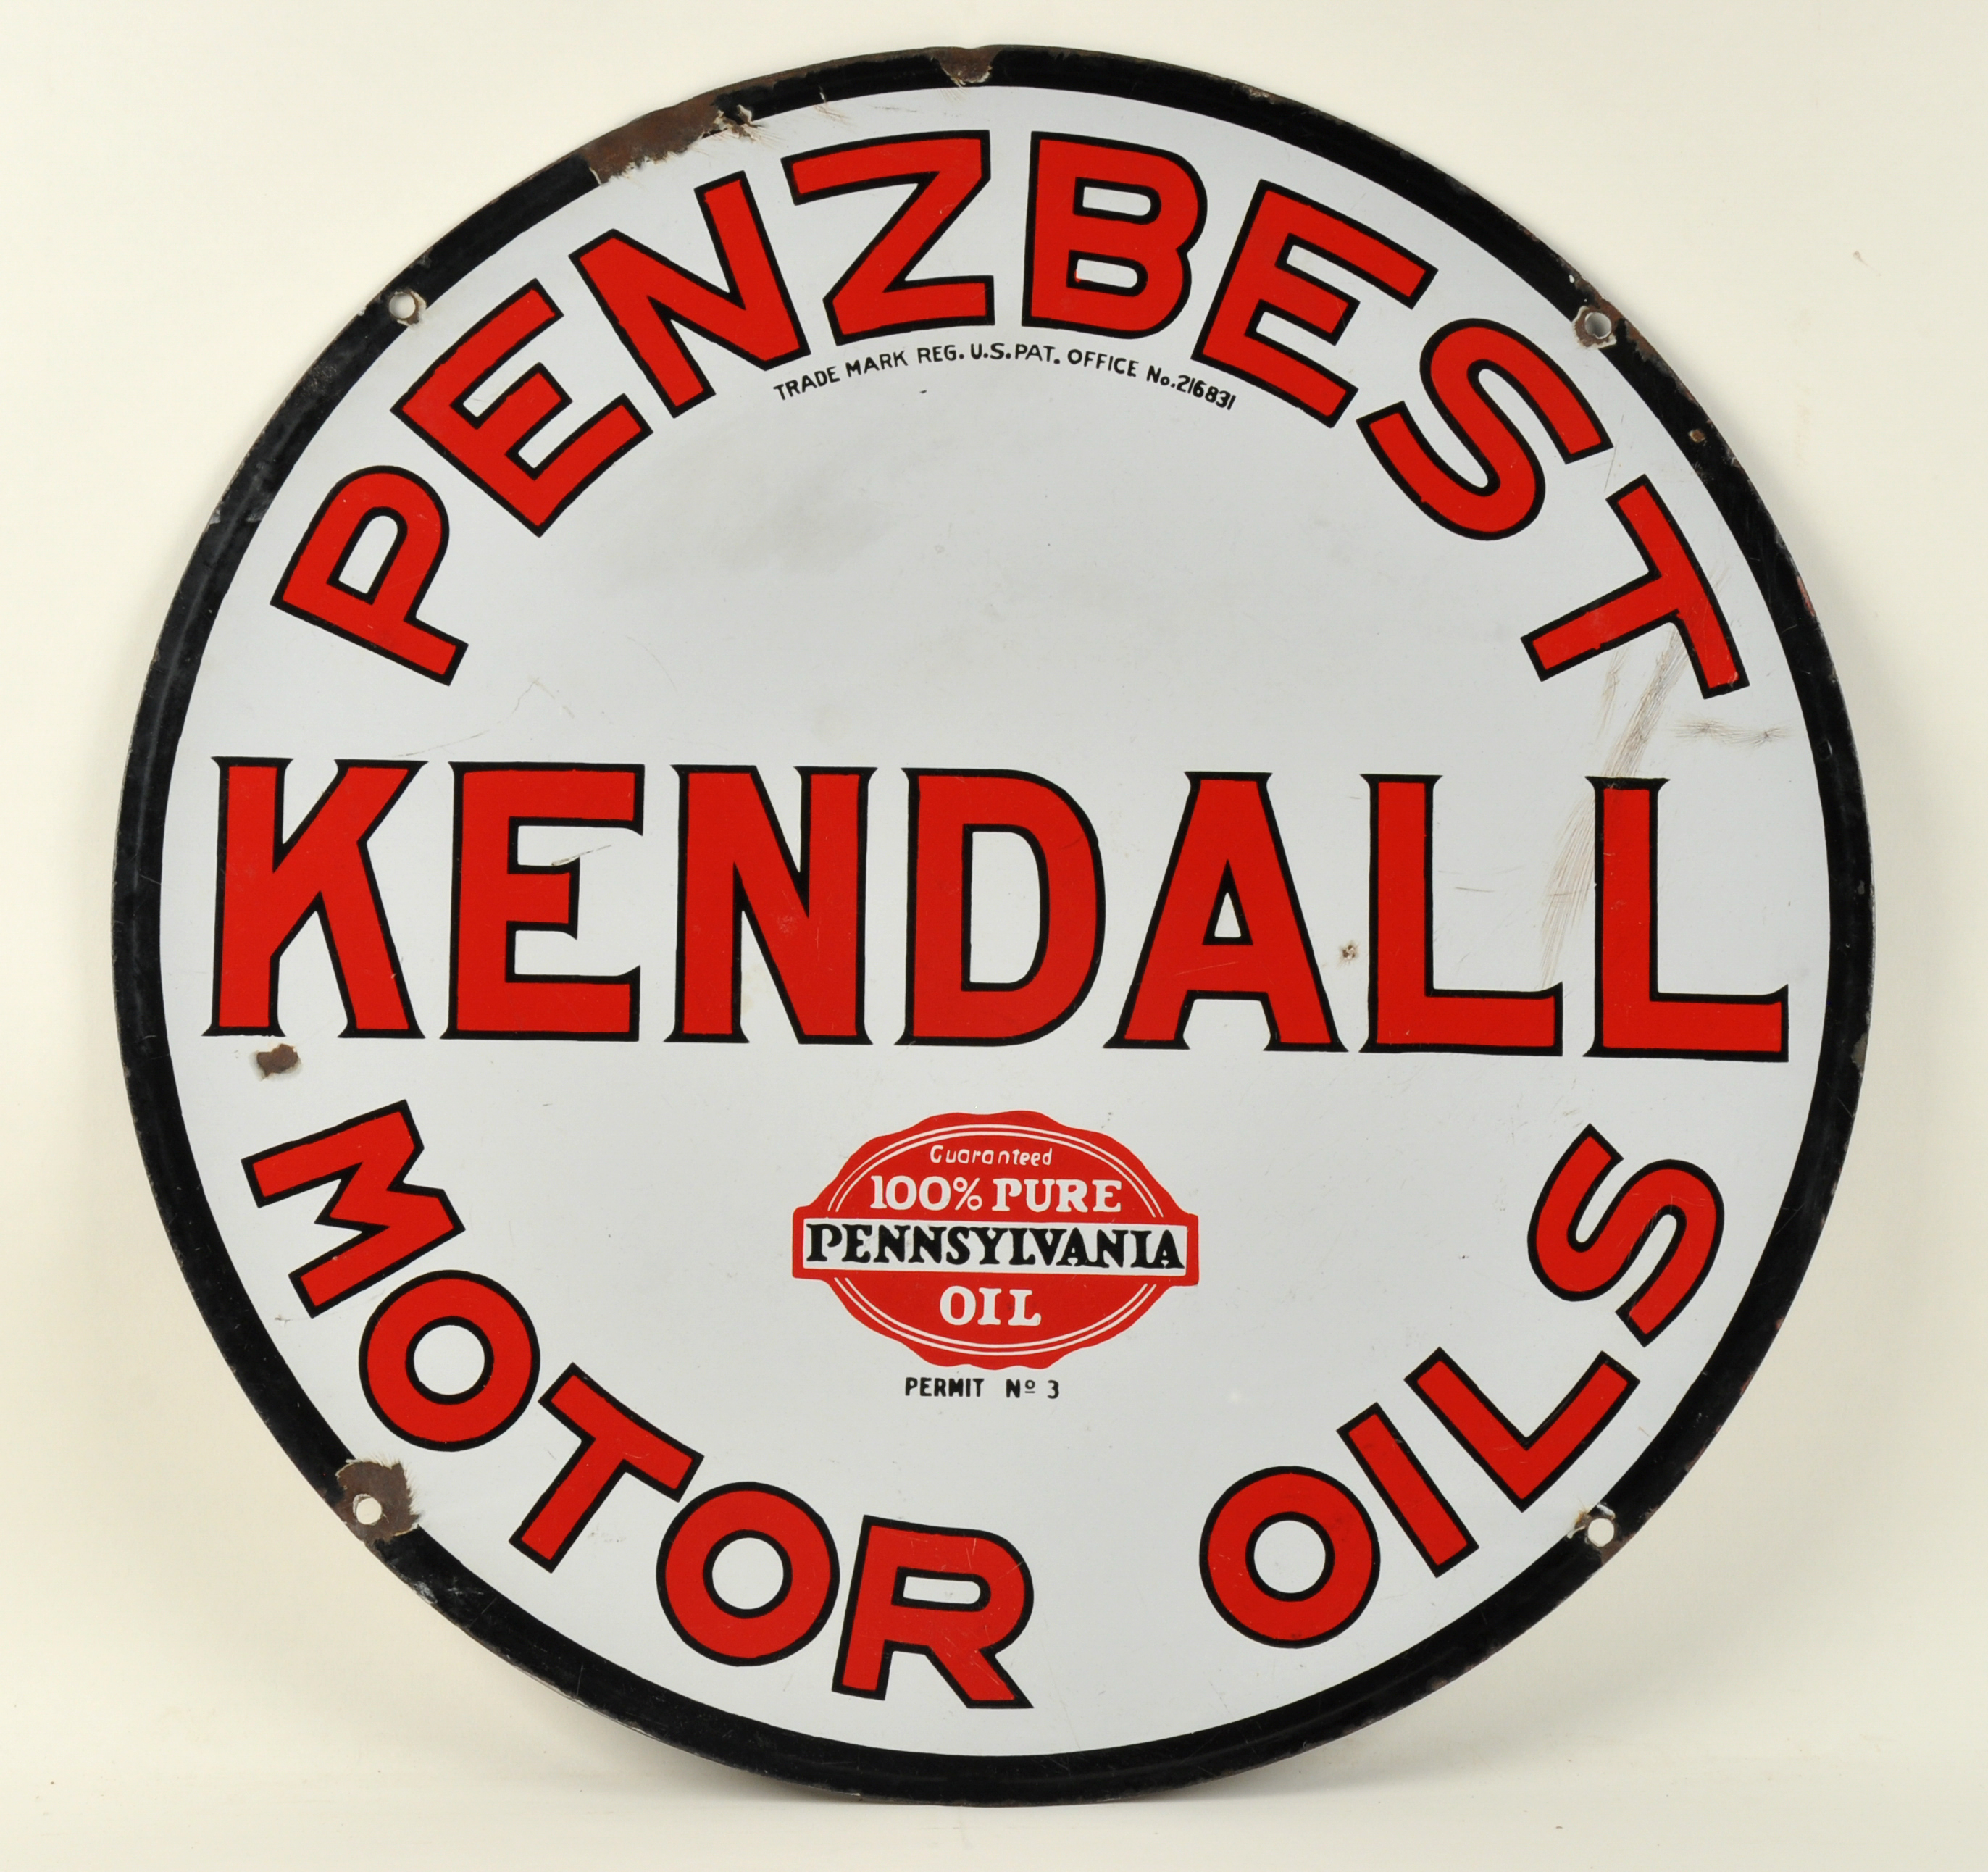 Lot 422 Penzbest Kendall Motor Oil Porcelain Sign